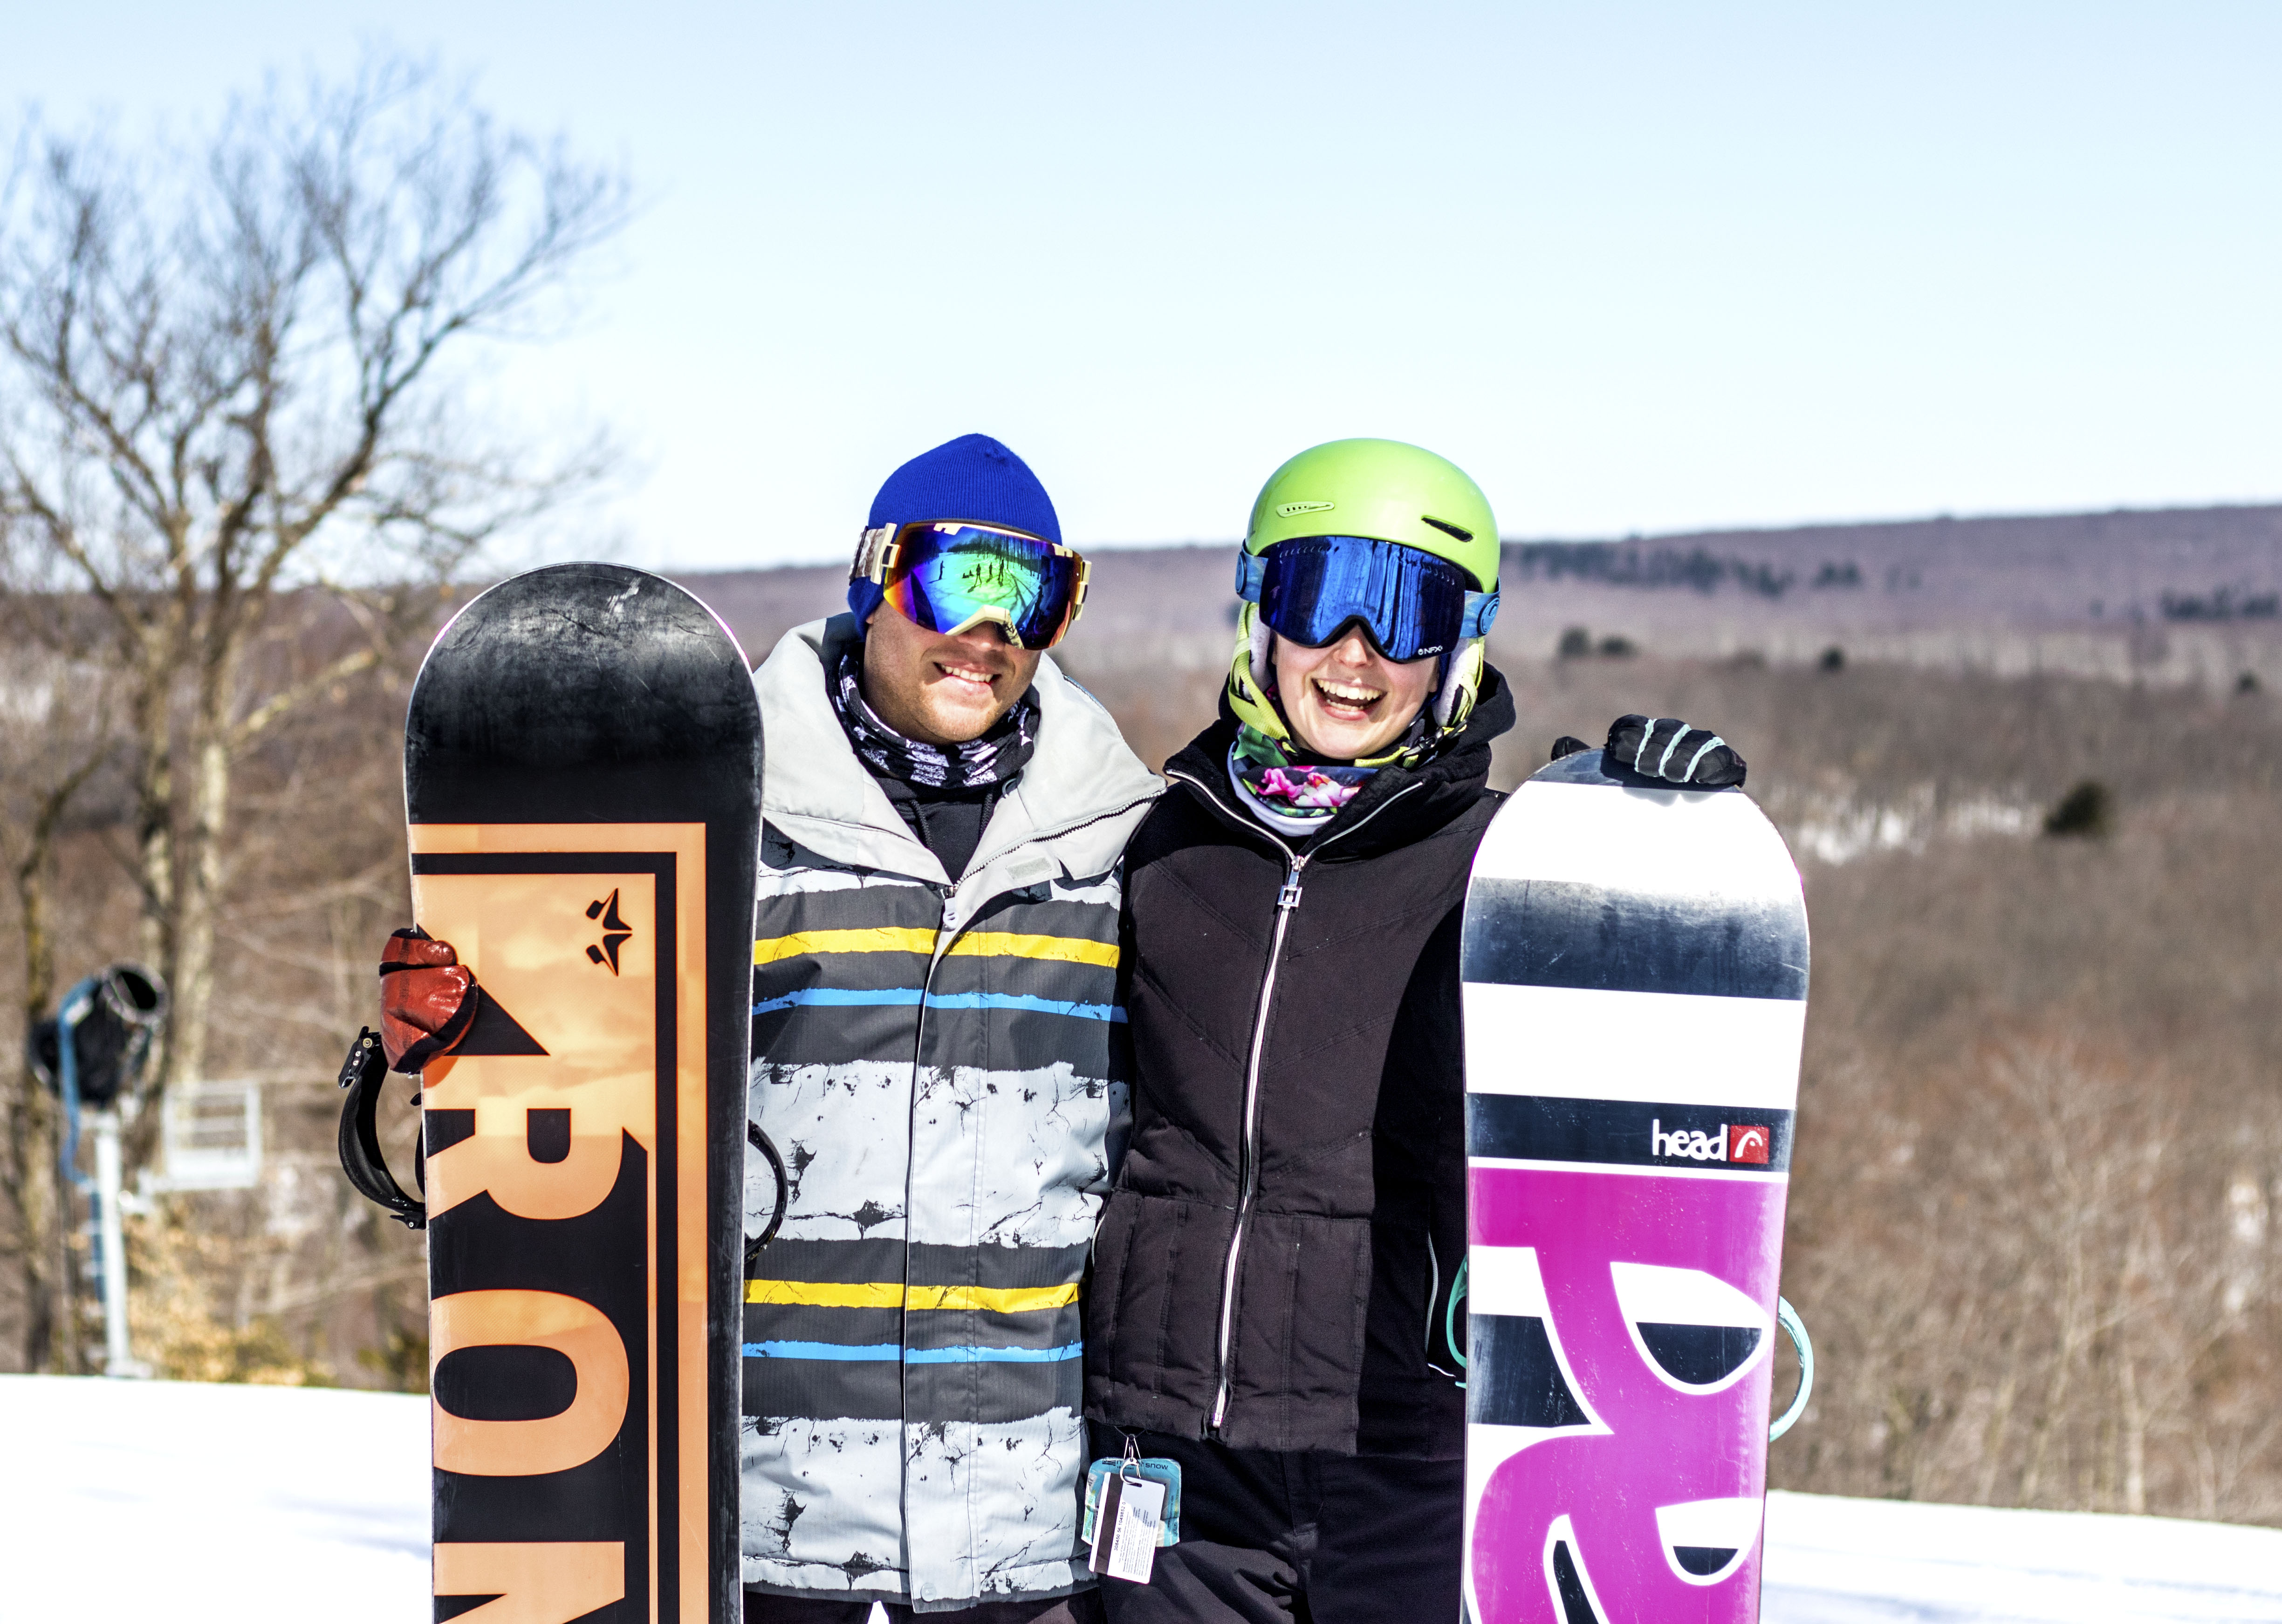 Pocono Mountains Snowboarding TransWorld Snowboarding - The top 10 destinations for your snowboarding vacation